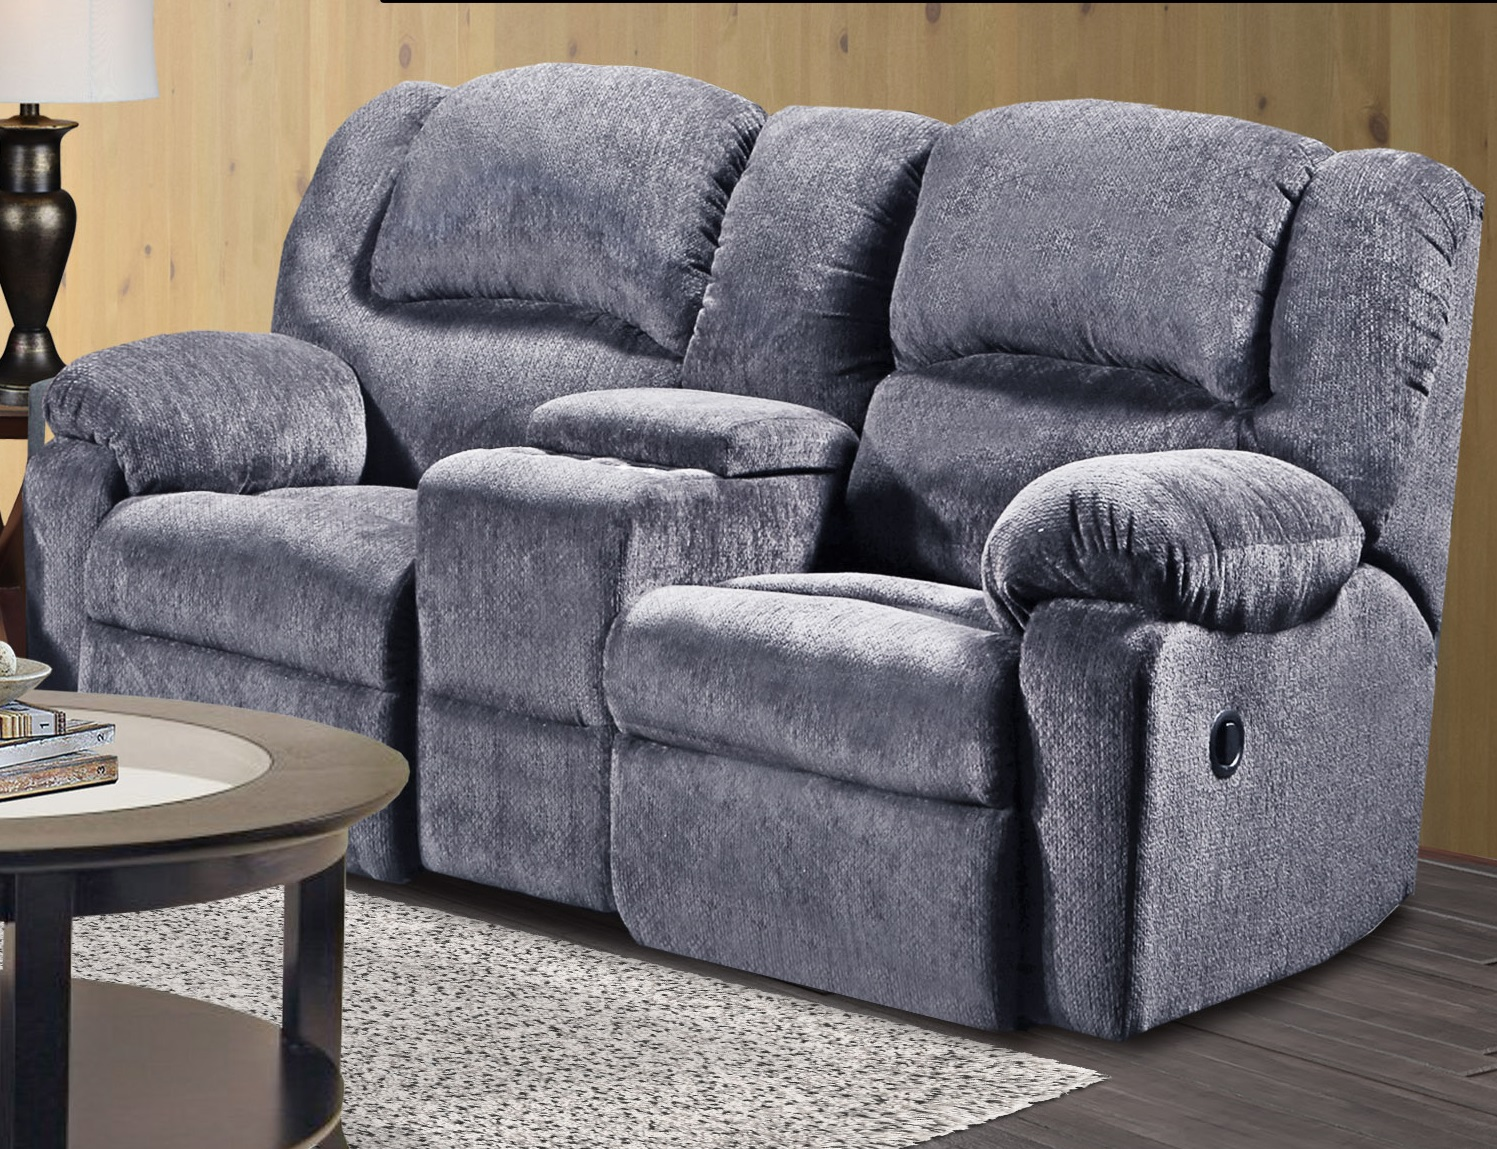 Fabulous Kelly Grey Reclining Loveseat Andrewgaddart Wooden Chair Designs For Living Room Andrewgaddartcom